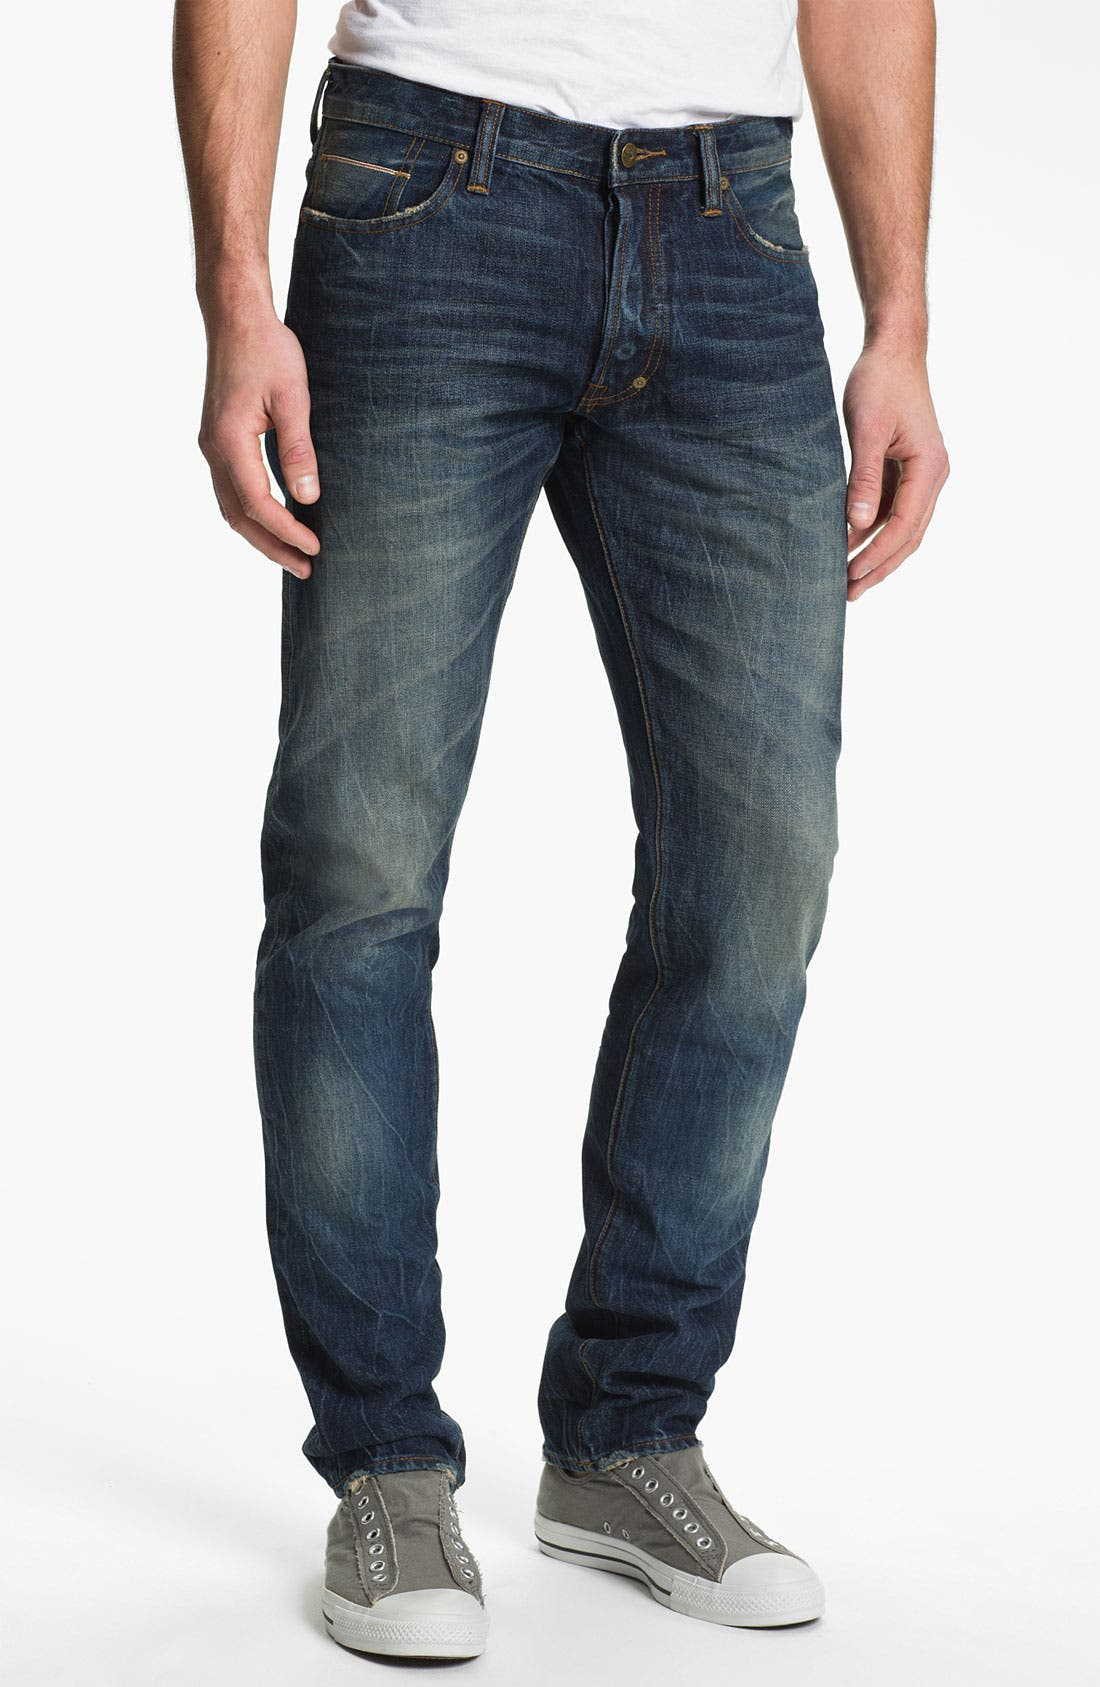 PRPS 'Barracuda' Straight Leg Selvedge Jeans